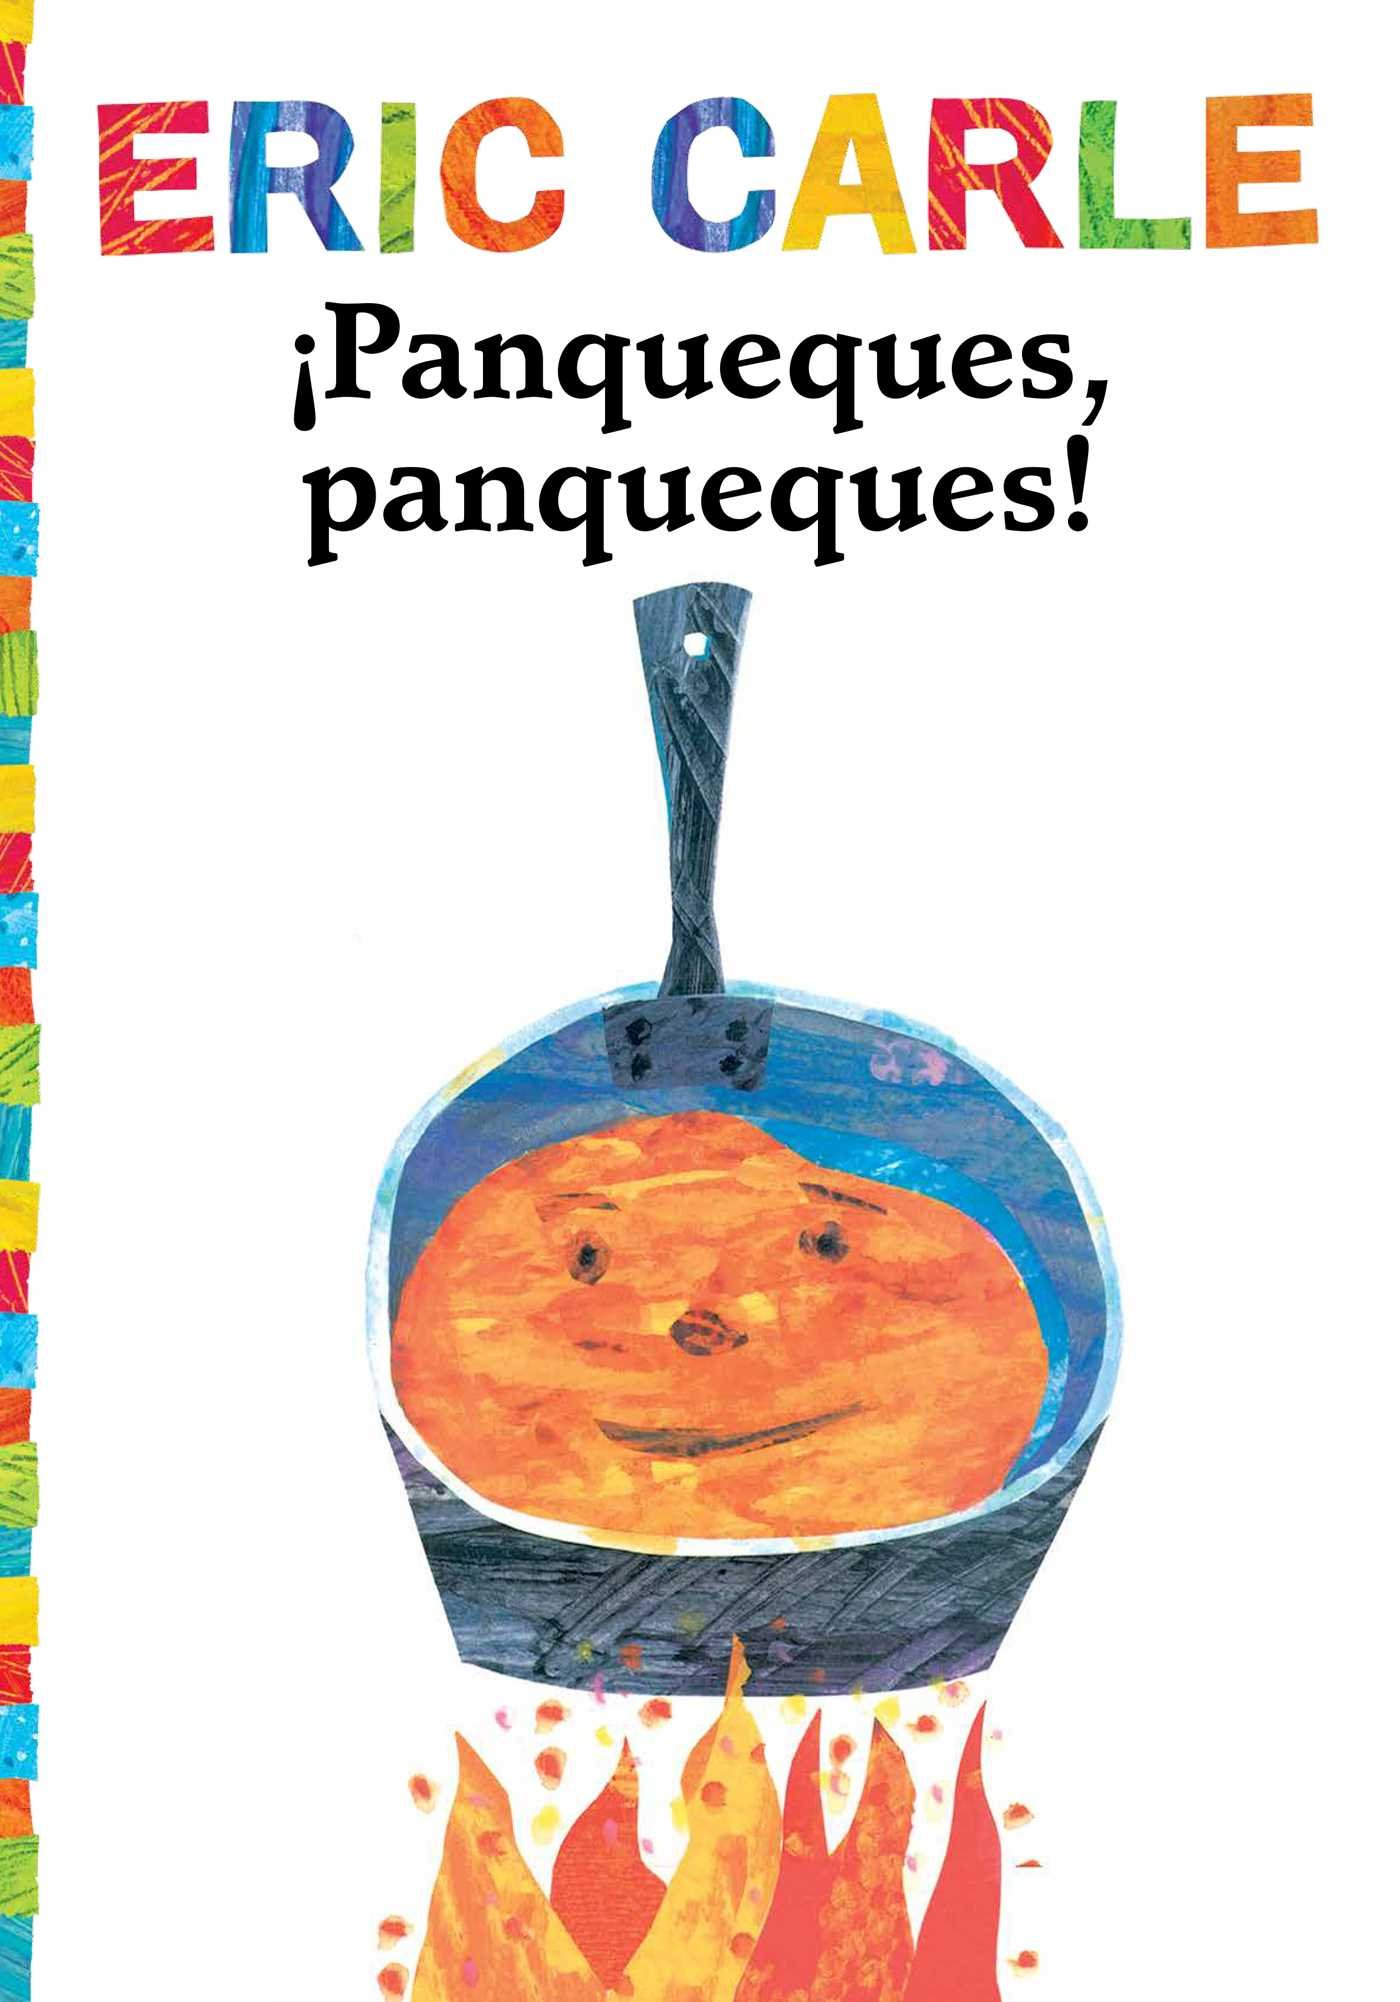 ¡Panqueques, panqueques! (Pancakes, Pancakes!) (The World of Eric Carle)